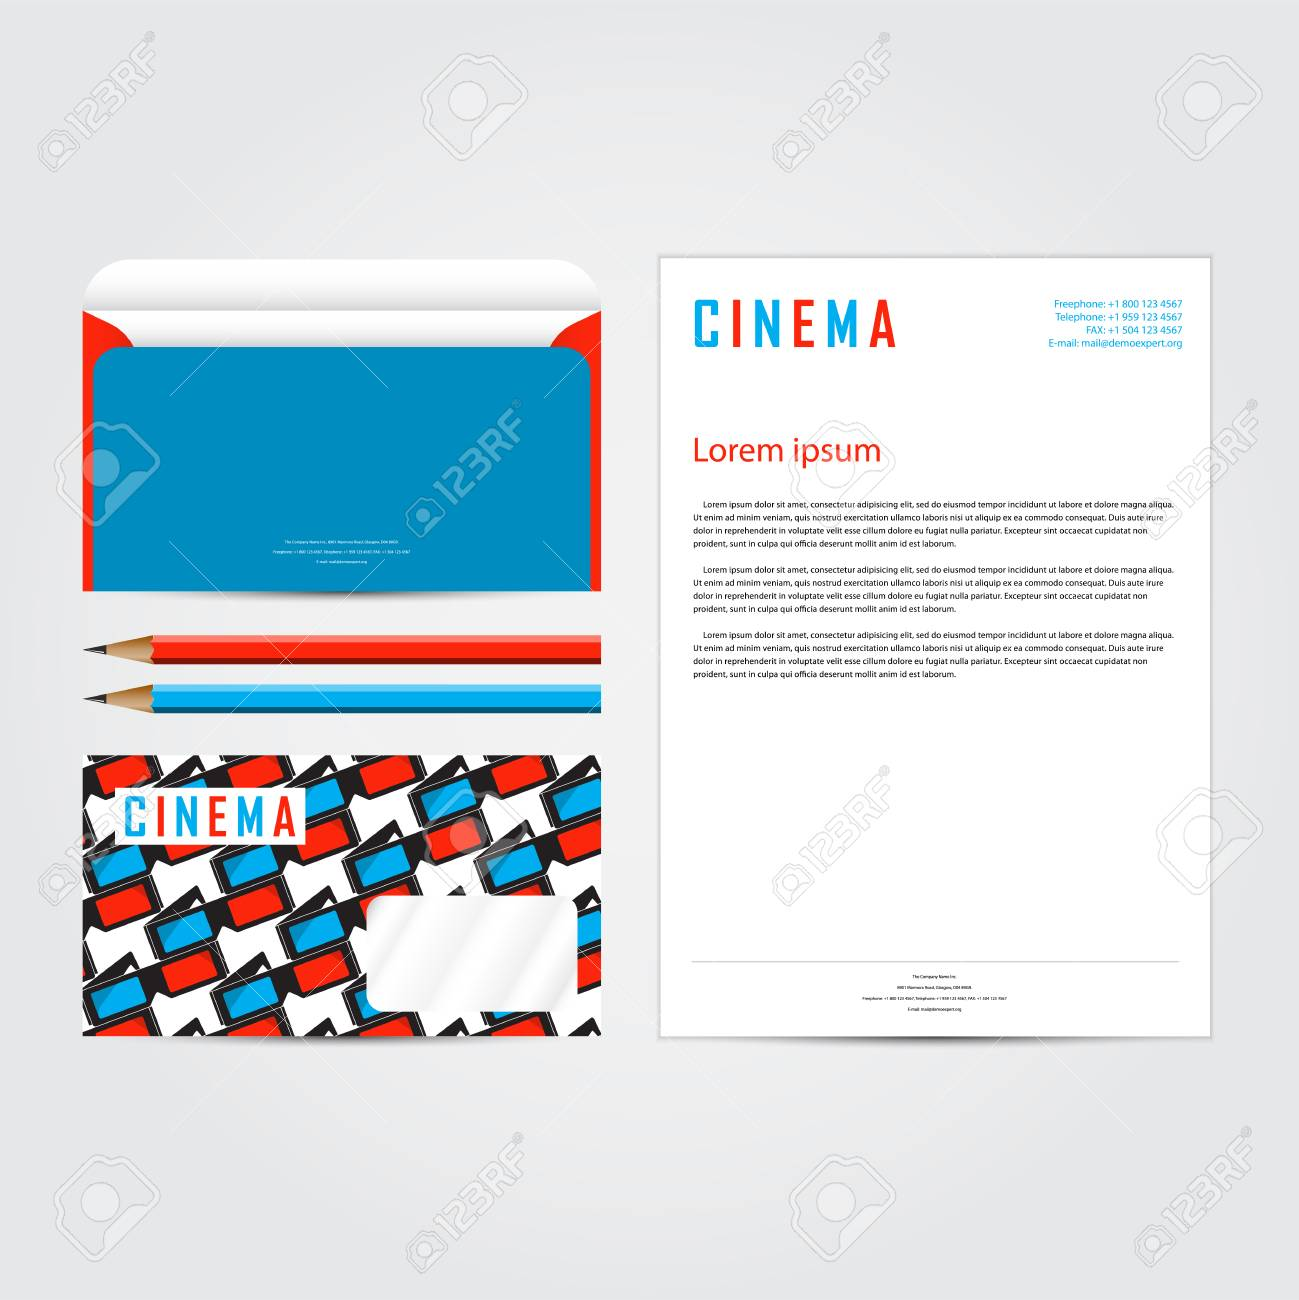 Cinema 3d corporate concept identity template set business cinema 3d corporate concept identity template set business stationery mock up branding design spiritdancerdesigns Image collections